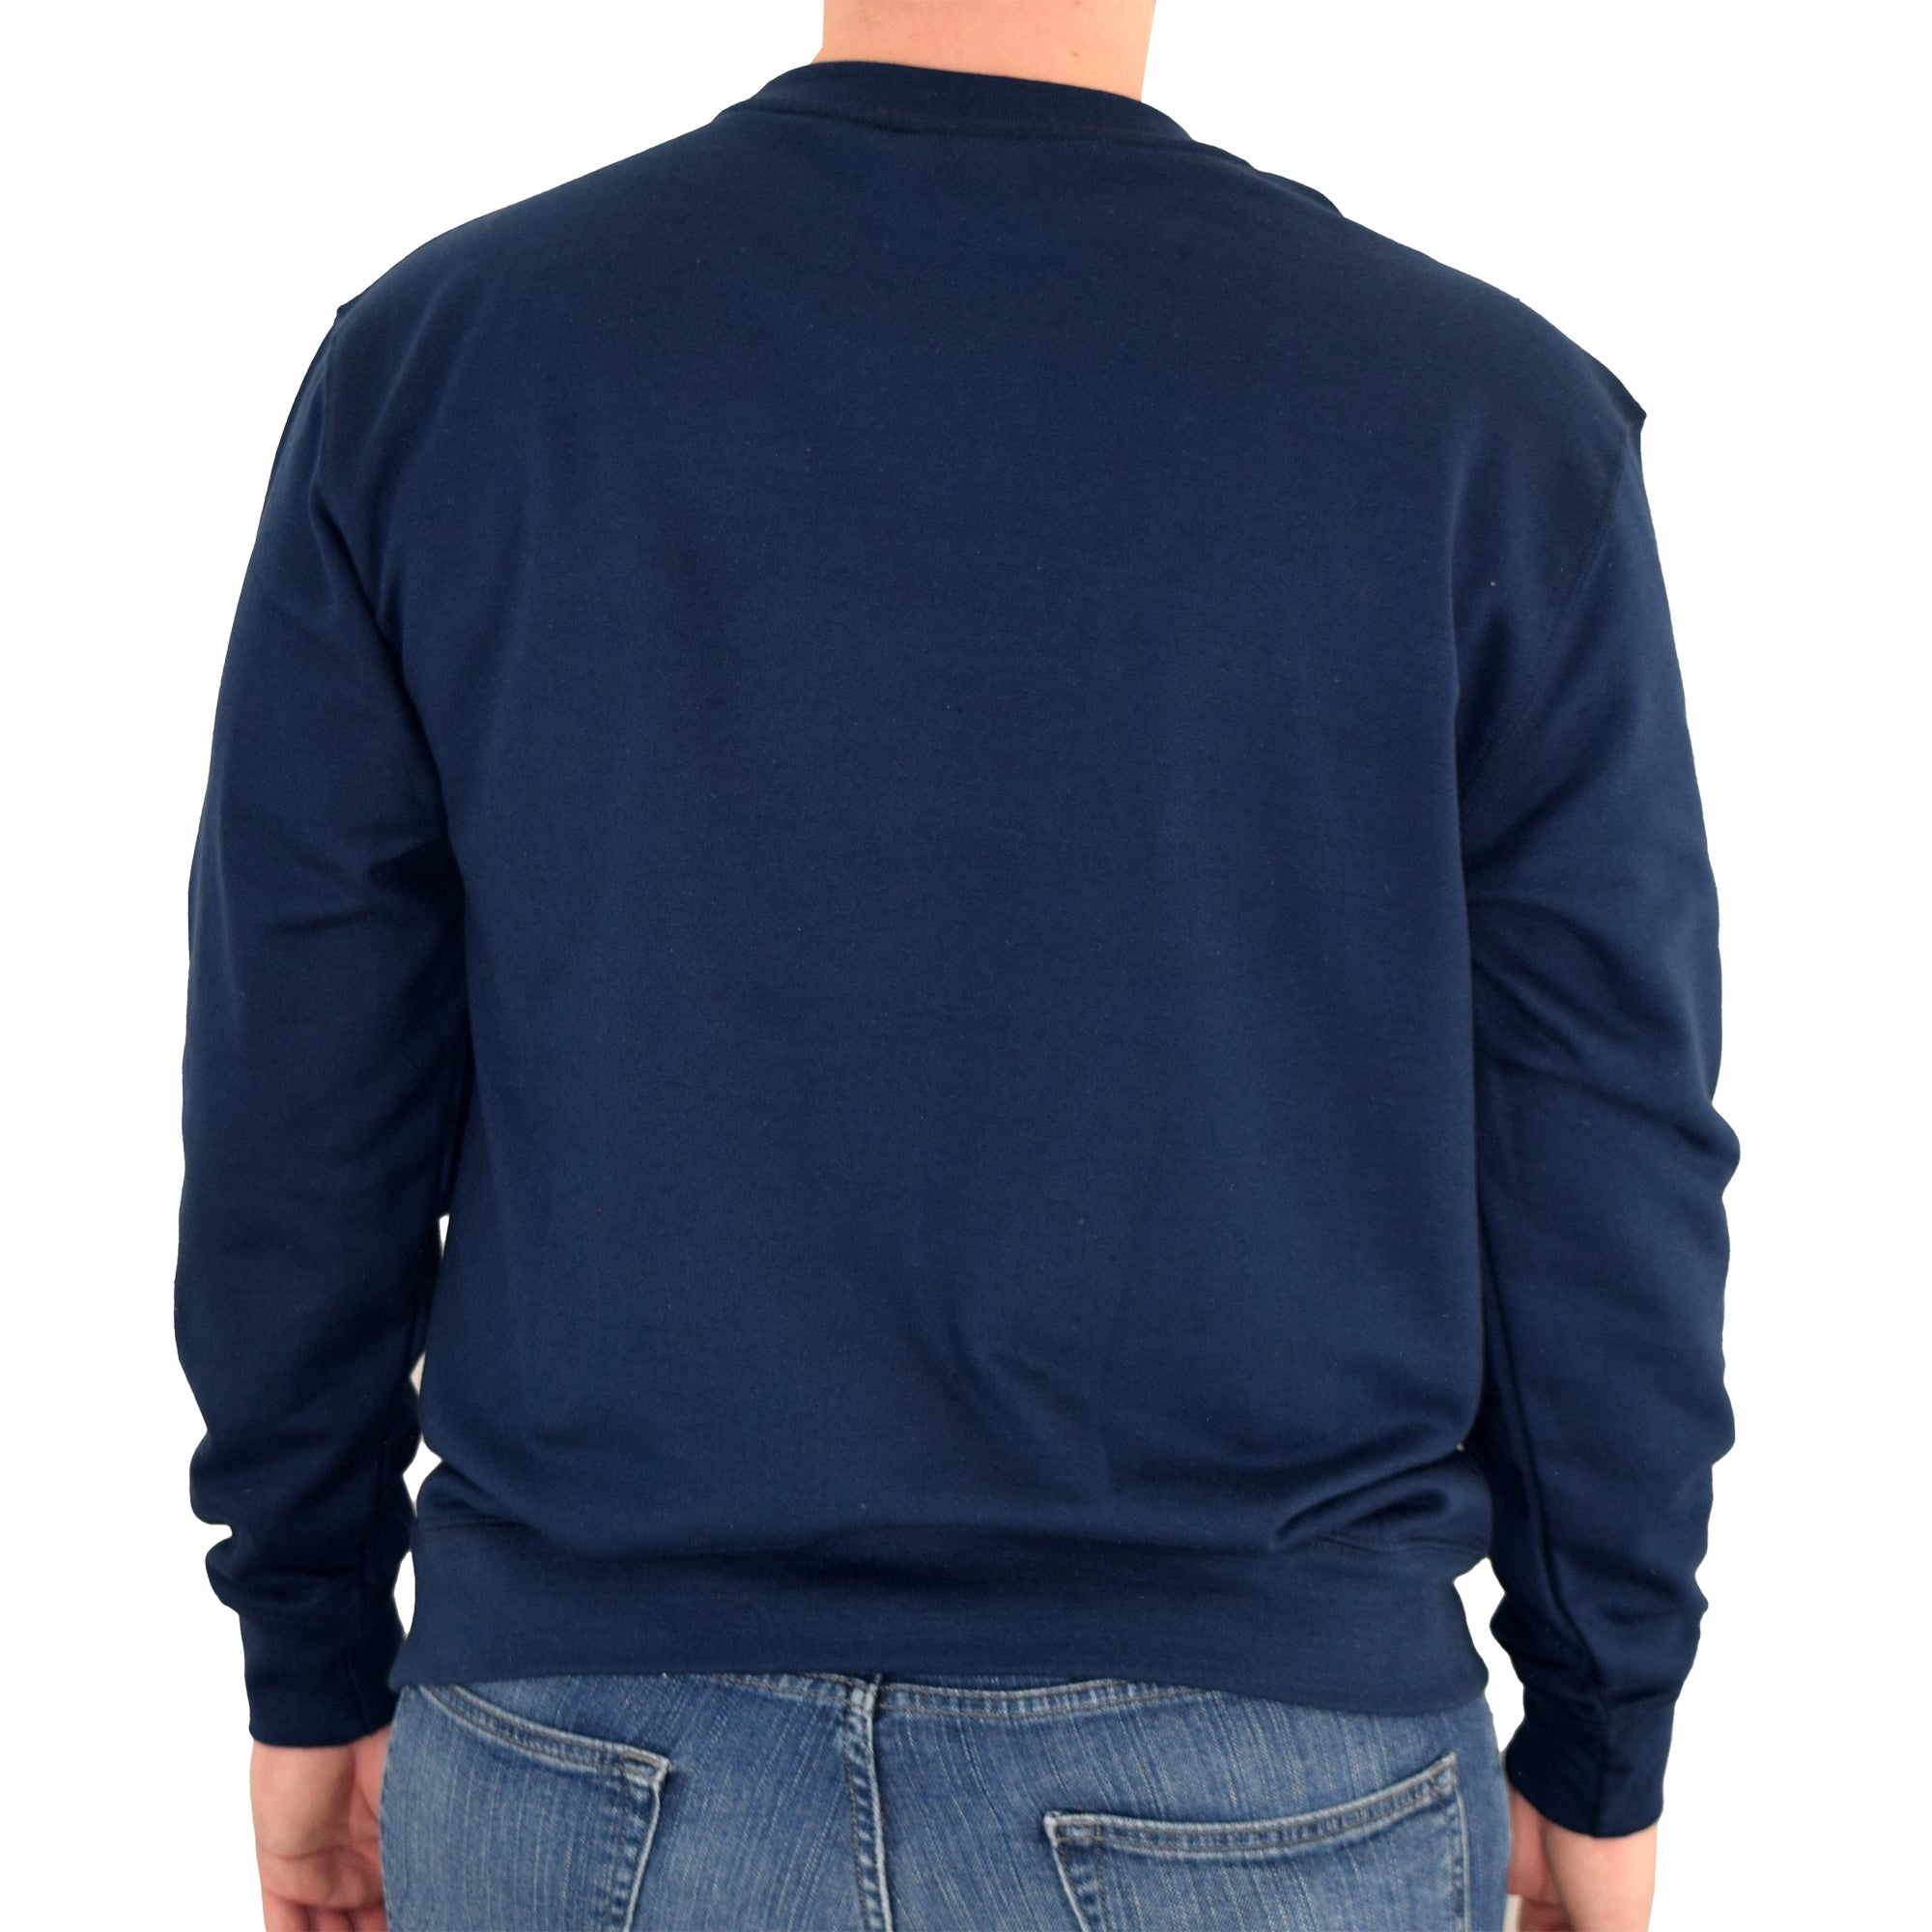 mens usa crewneck fleece sweatshirt navy - the flag shirt